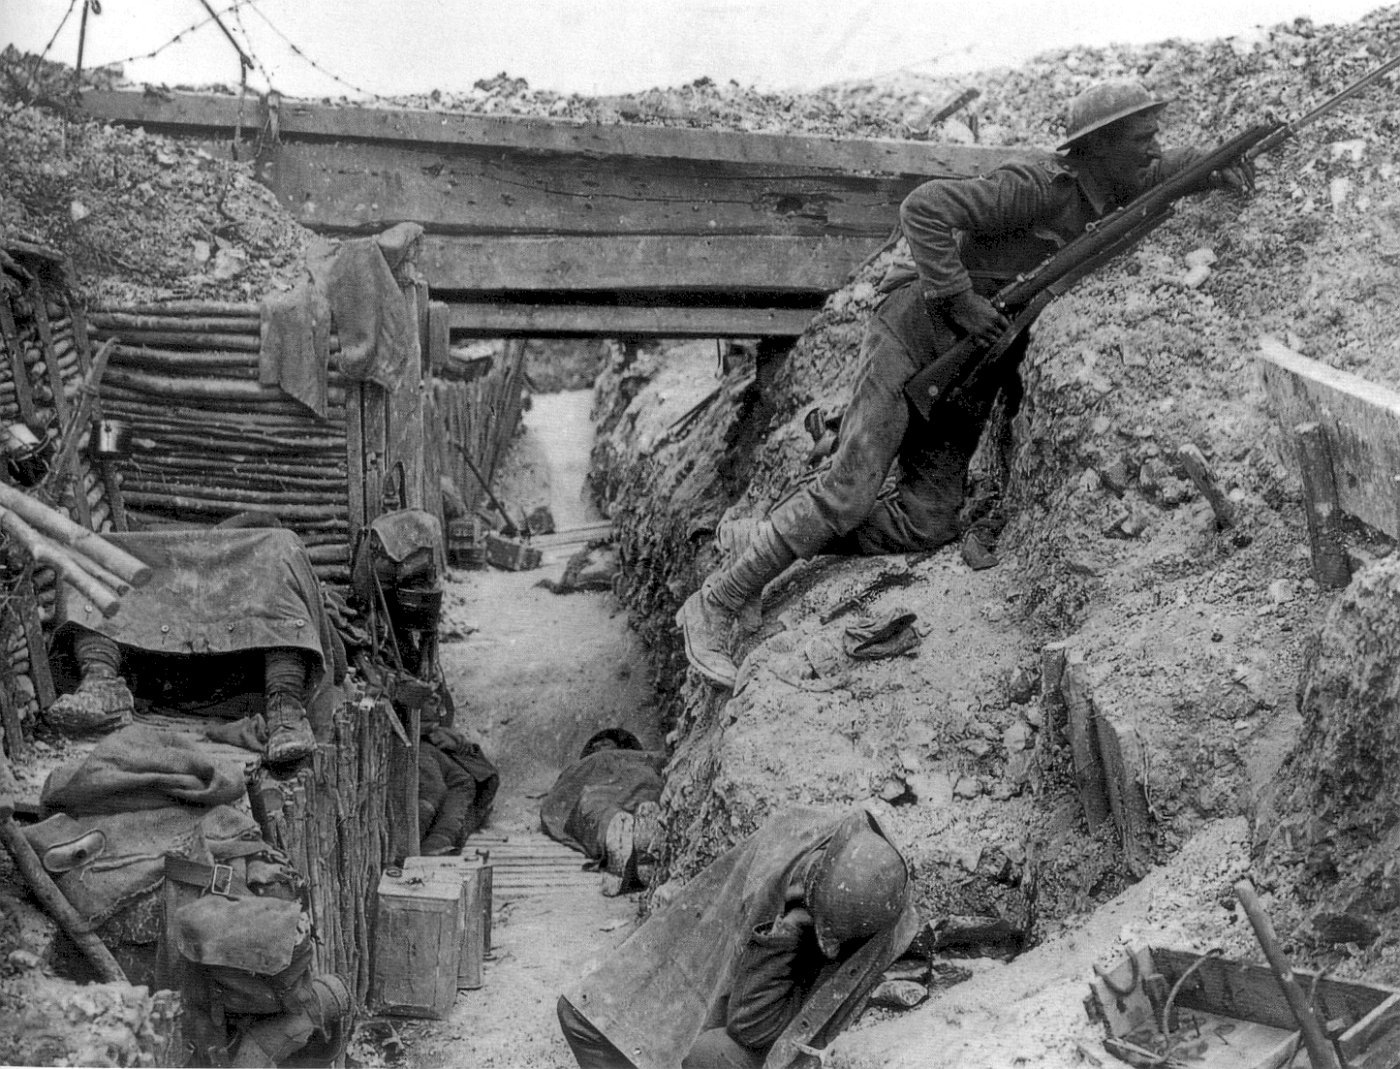 Soldiers in trenches